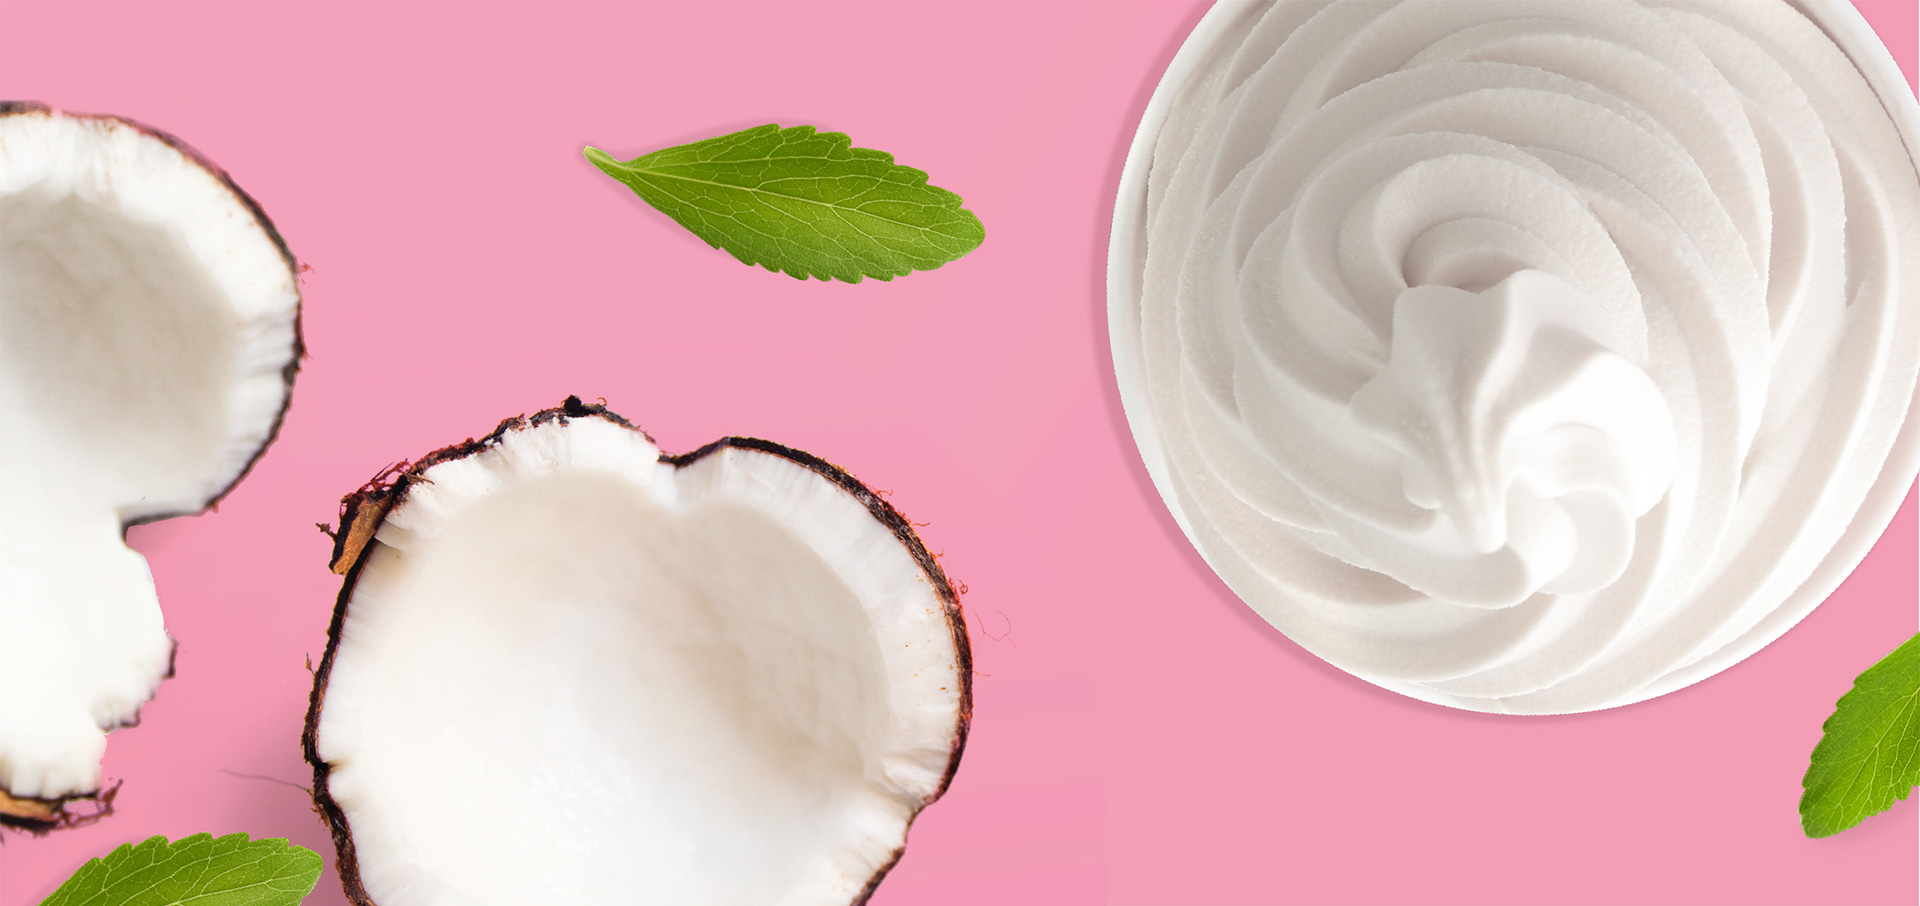 A coconut split in half alongside a cup of yogurt